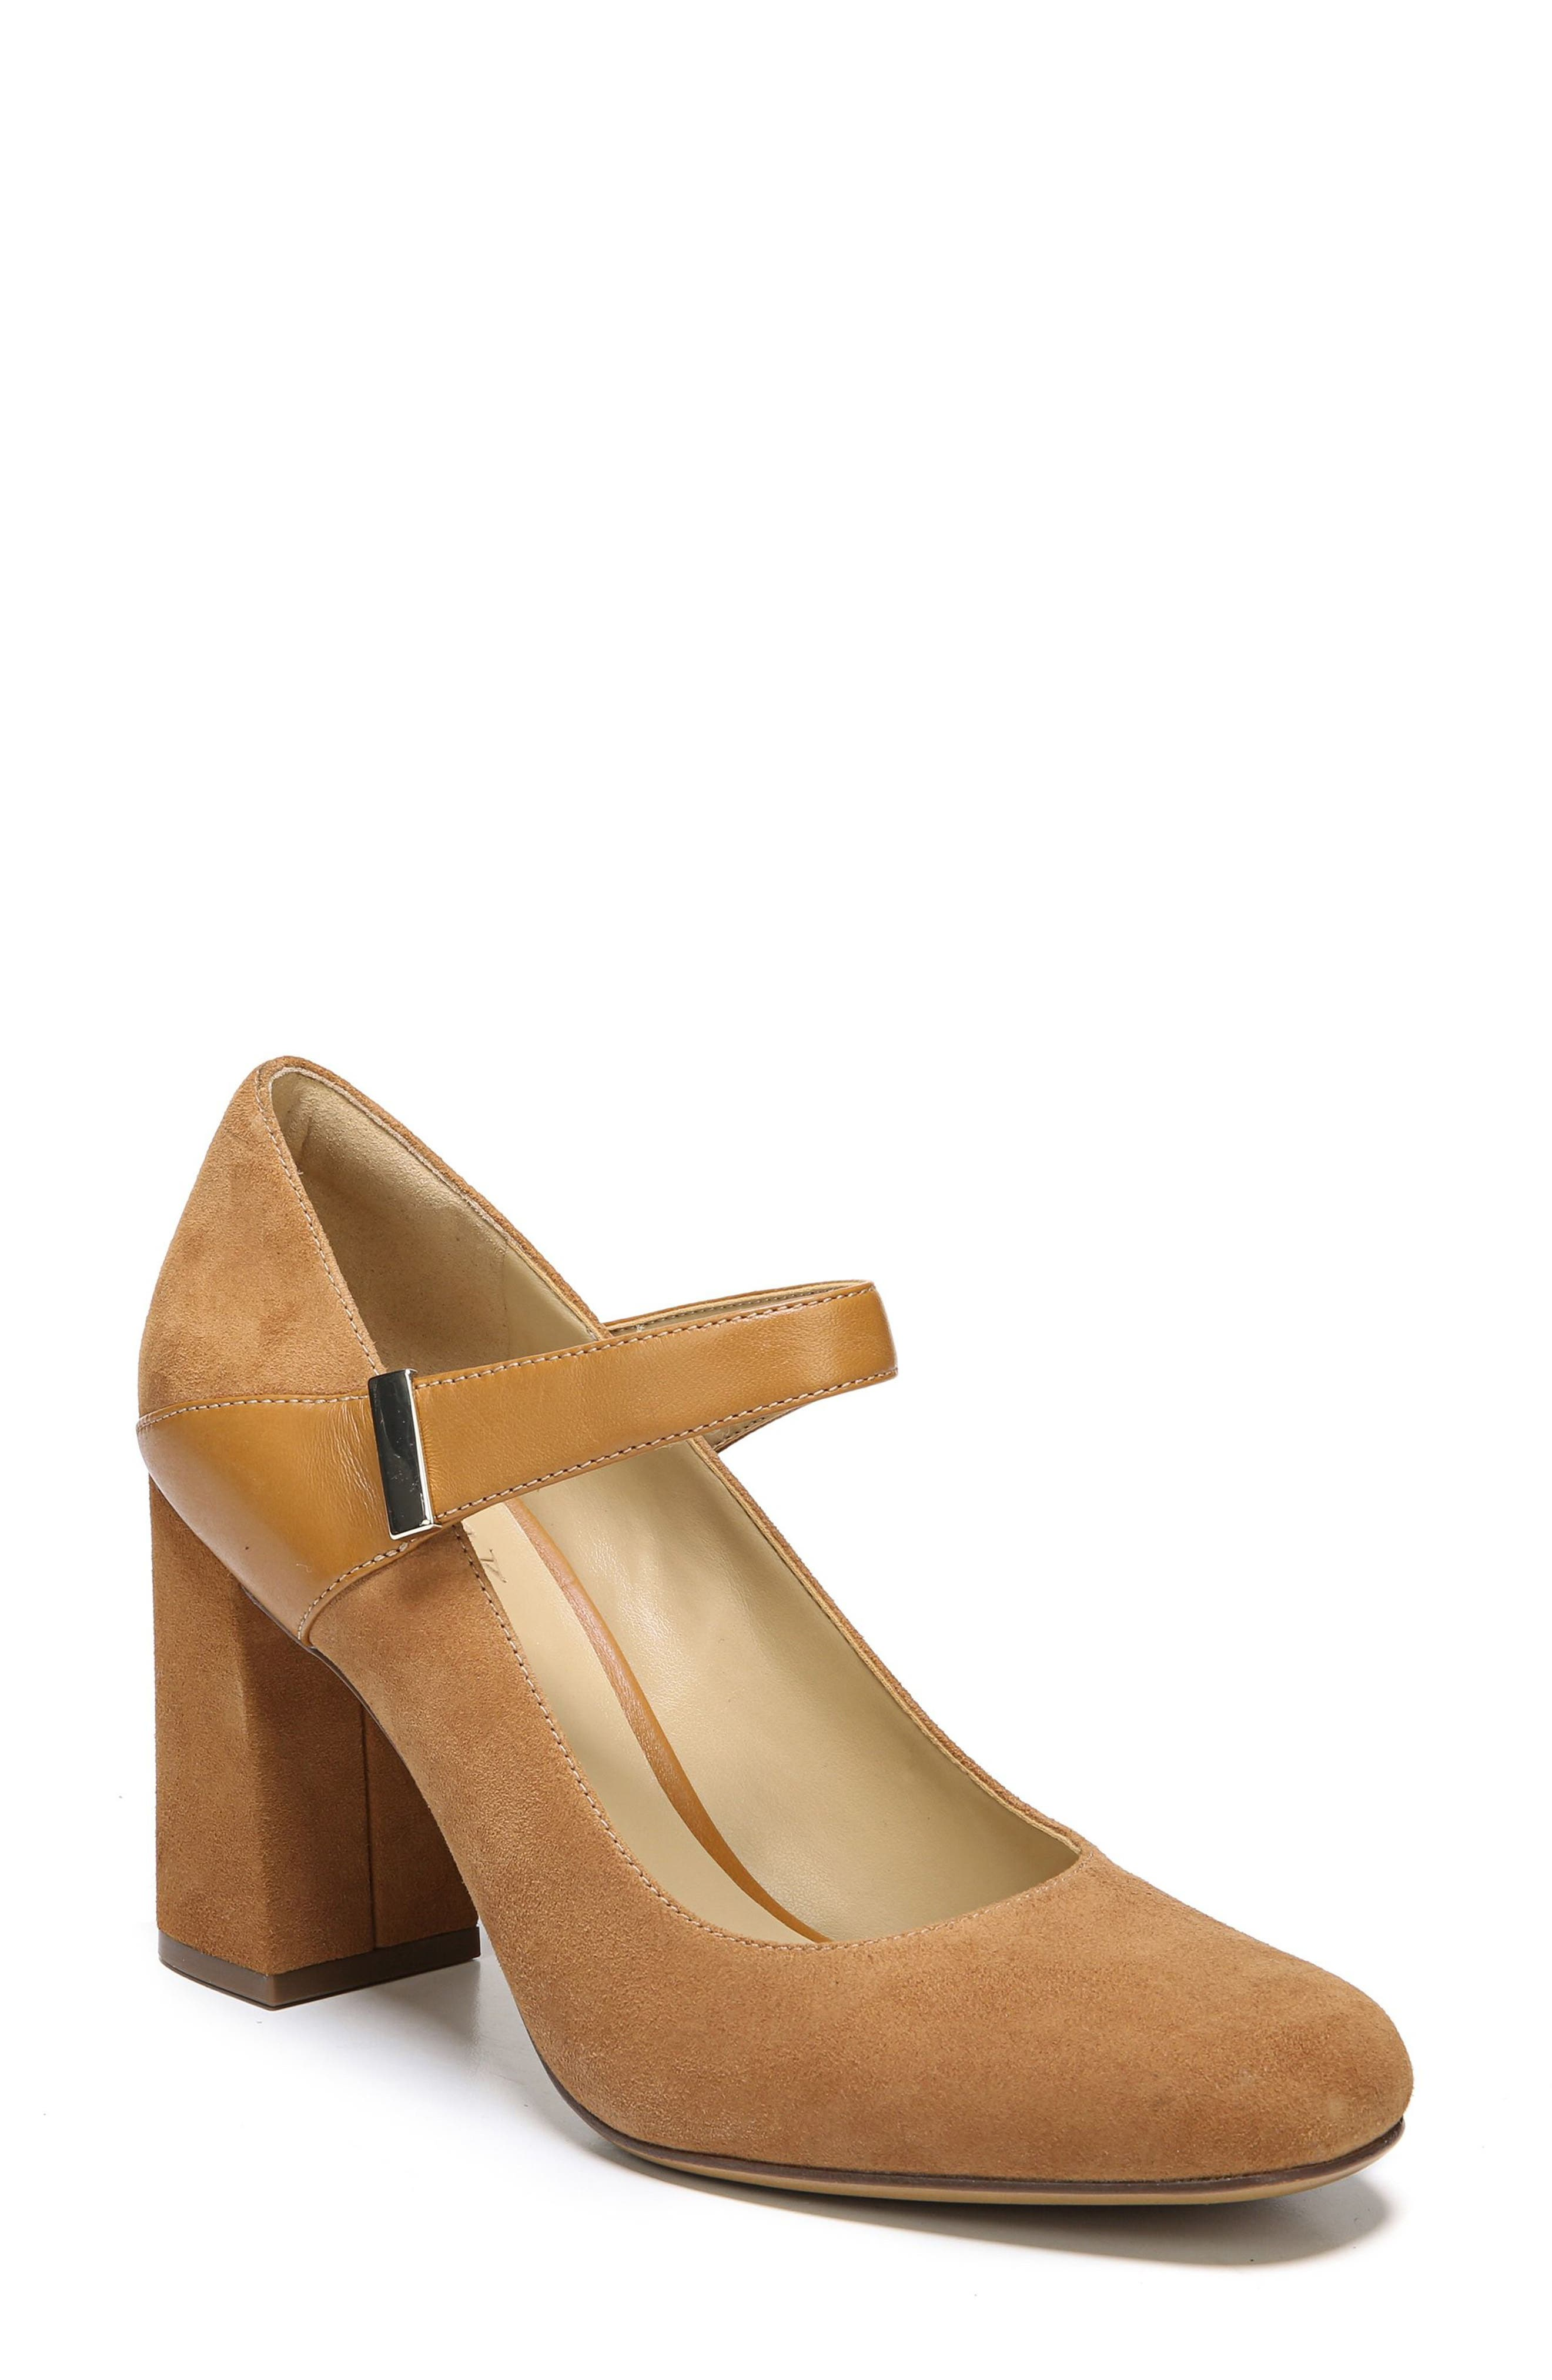 Reva Mary Jane Pump,                             Main thumbnail 1, color,                             Camelot Suede